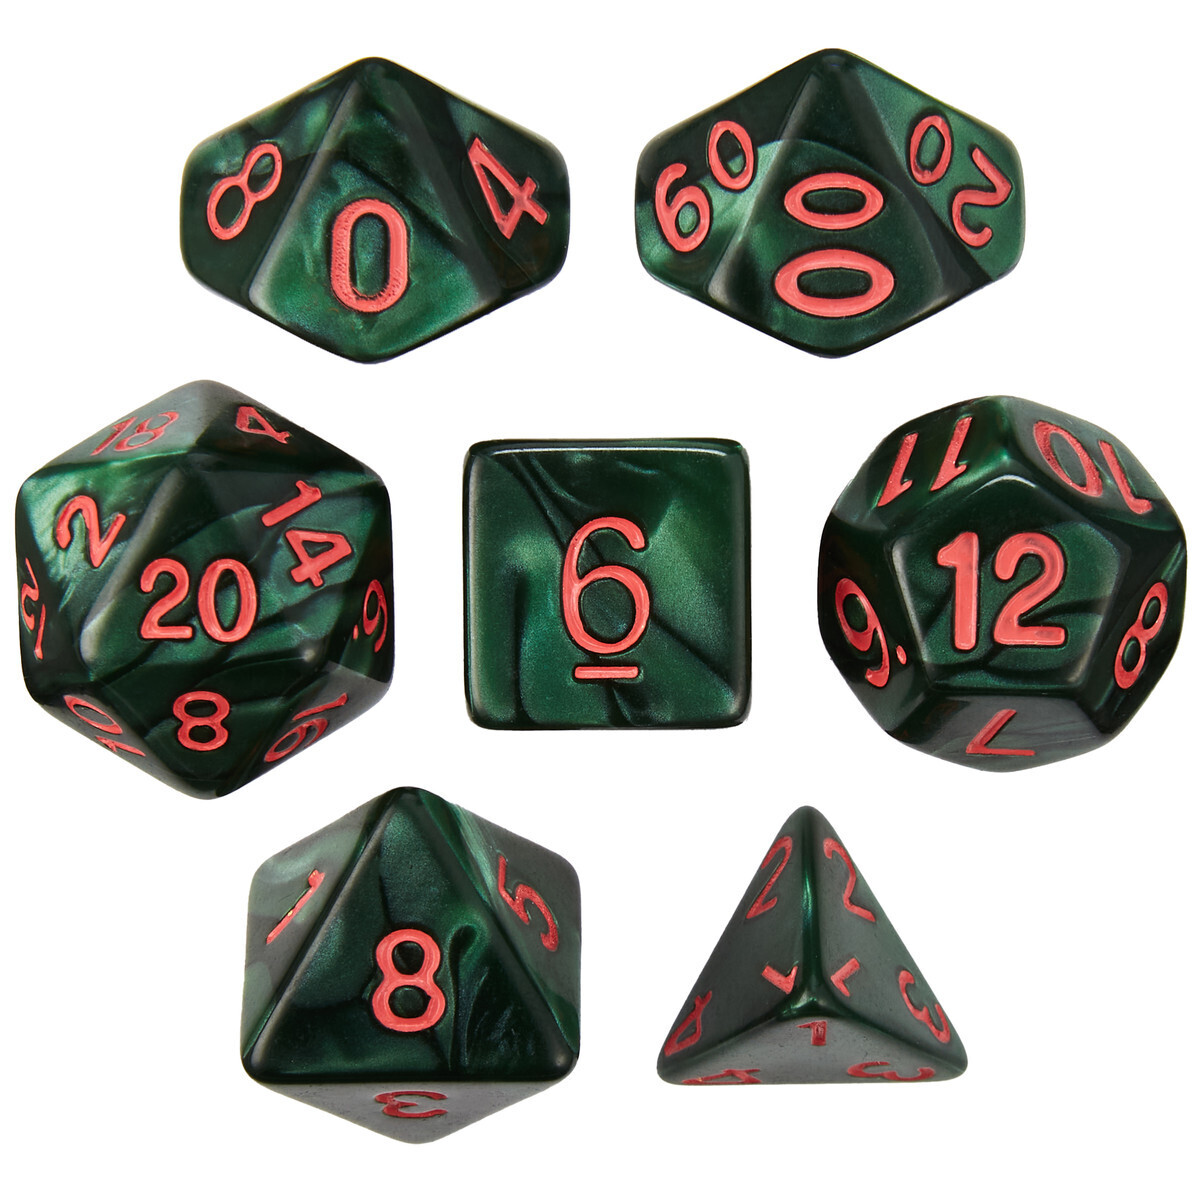 16mm 7 Die Polyhedral Set - Cinderbloom - Pearlized Green With Red Paint - RPG Tabletop Games Roleplay Cards CCG Board Random Roll Decision